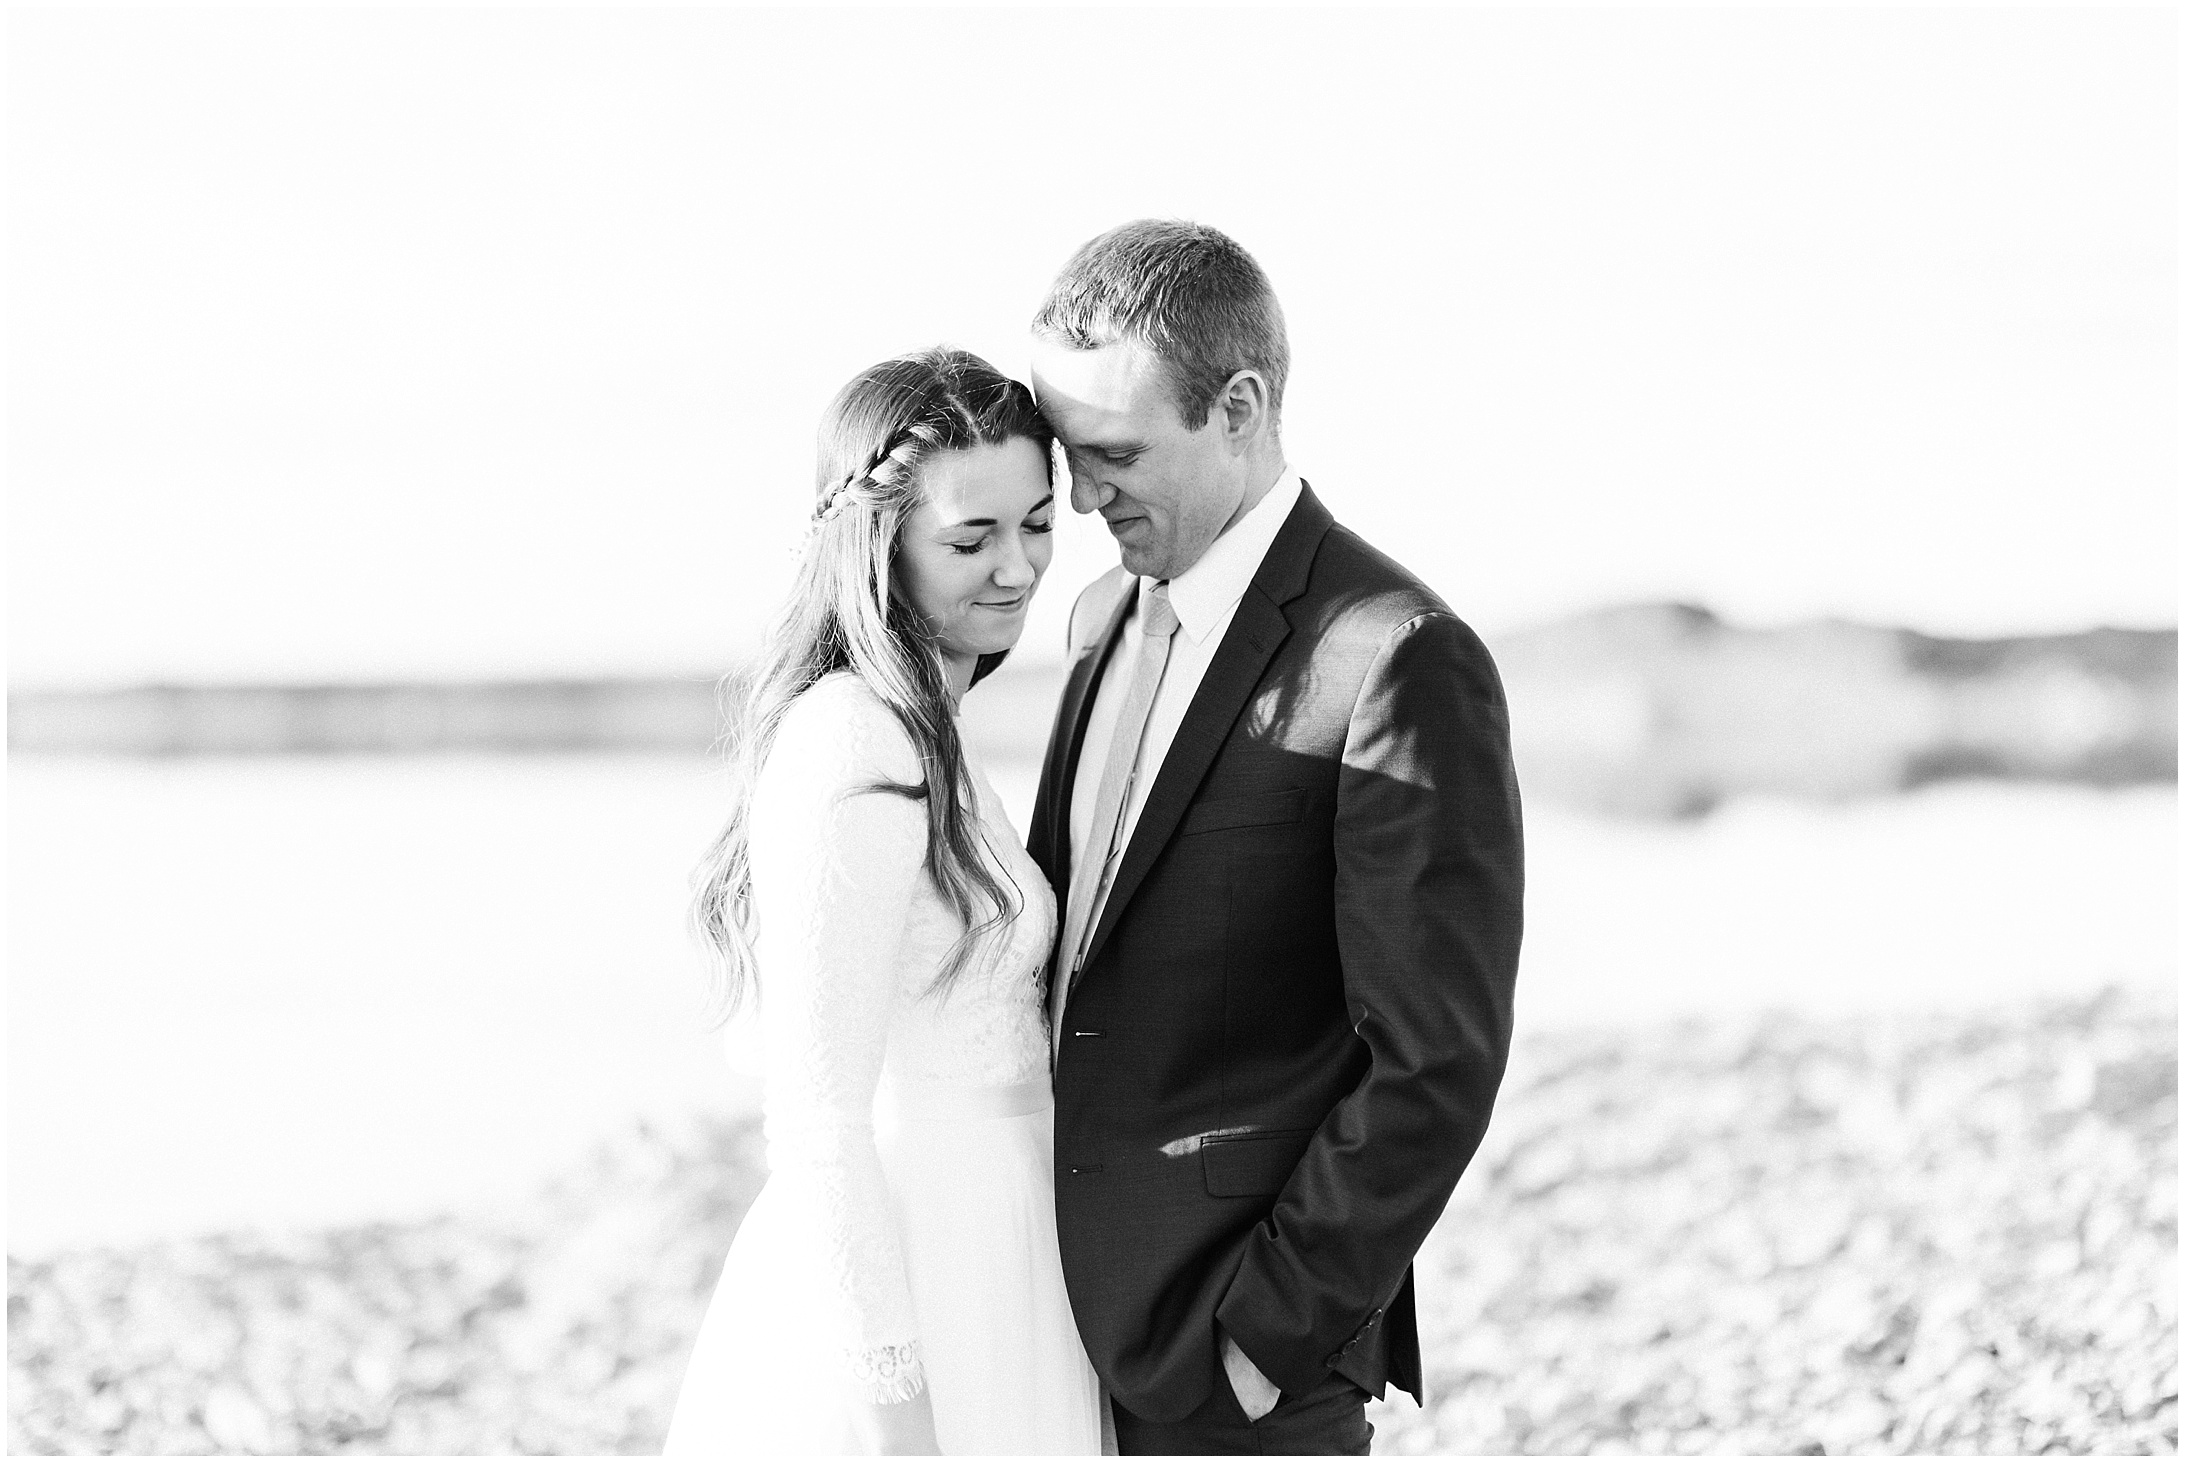 Black and white photo of a bride and groom standing by a desert lake by Forthright Photo